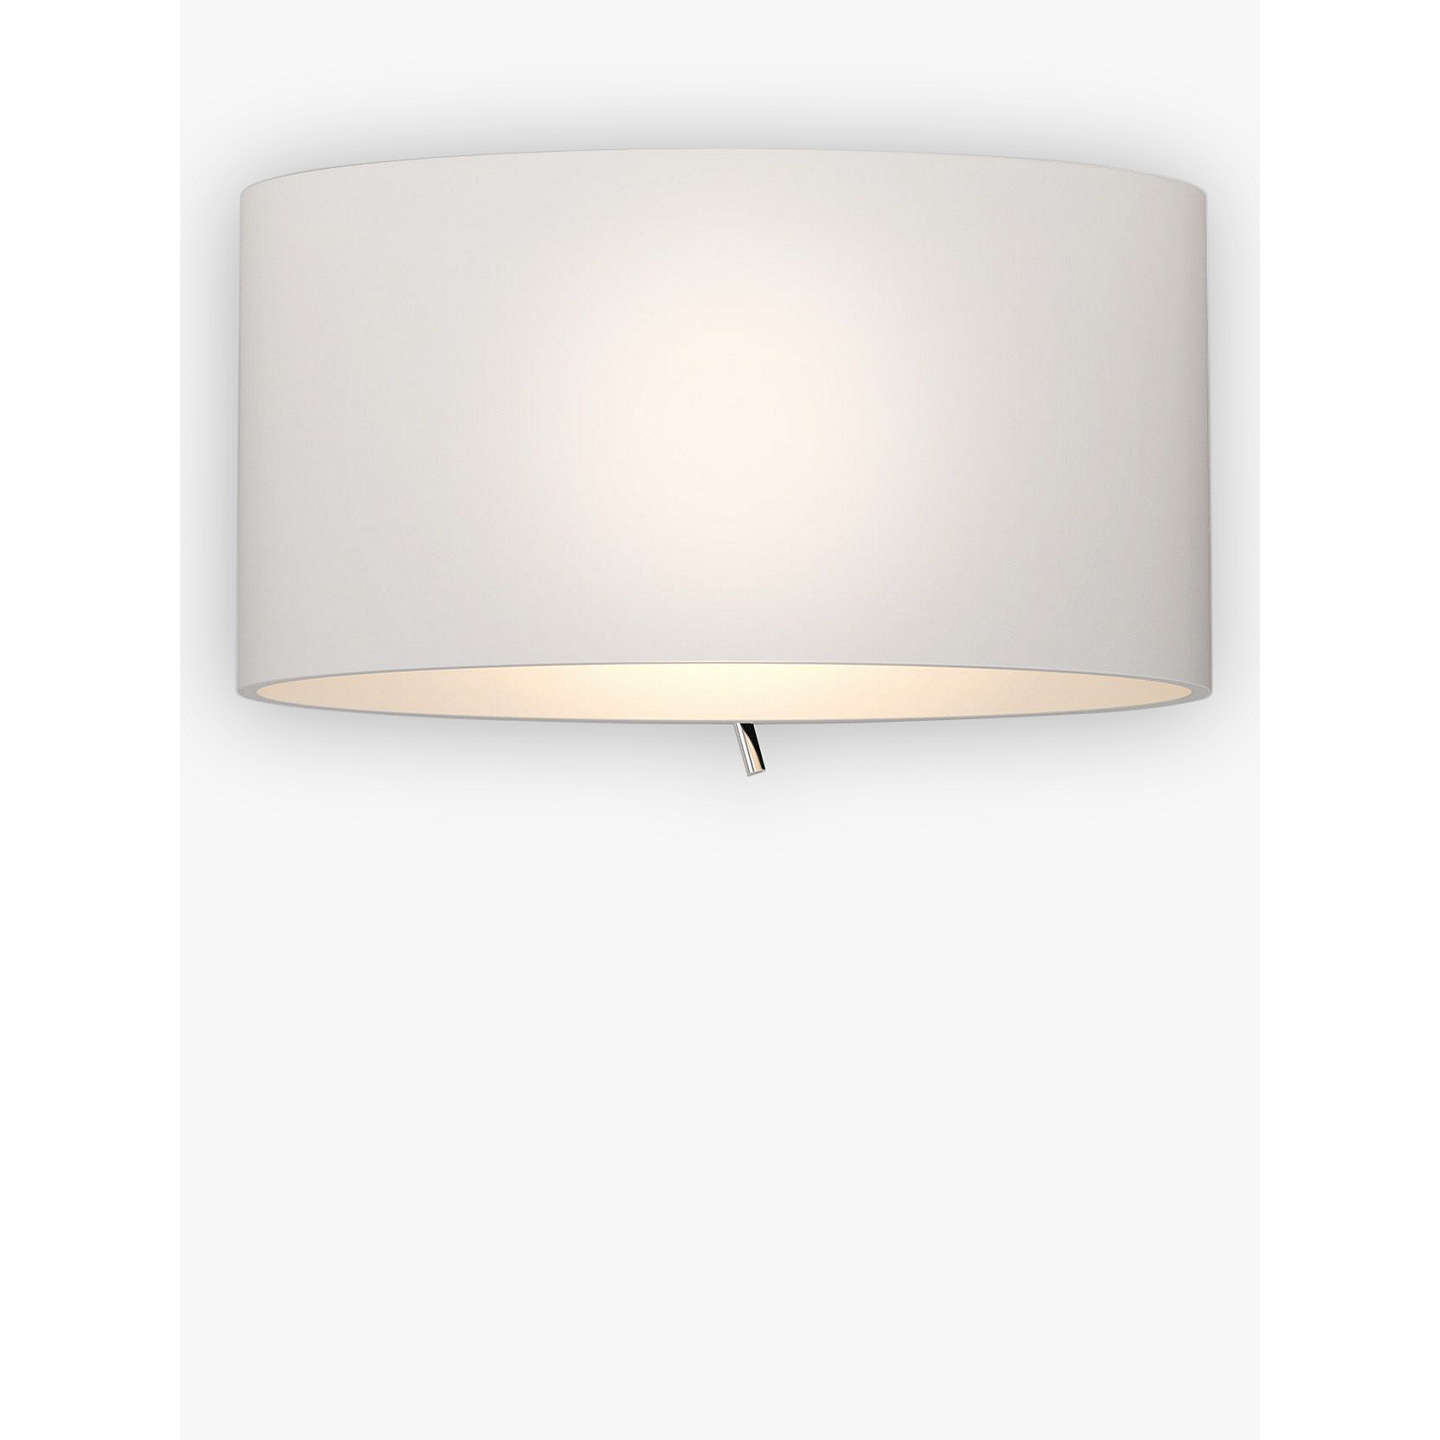 Astro tokyo wall light at john lewis buyastro tokyo wall light online at johnlewis aloadofball Image collections